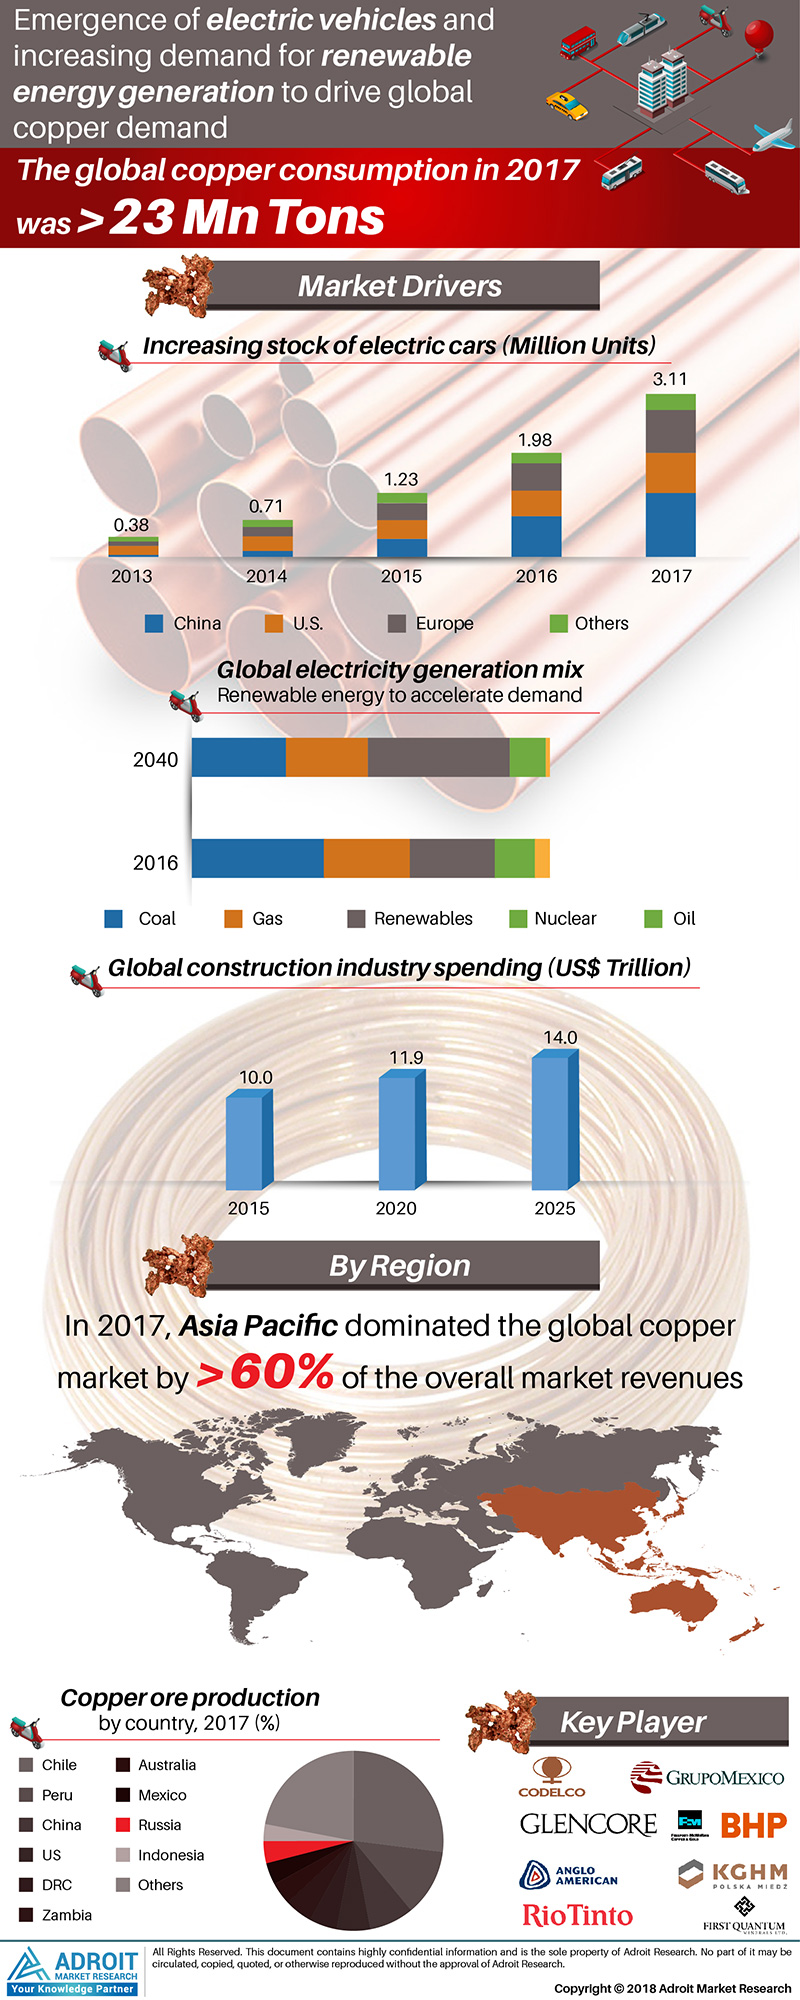 Global Copper Market Size 2017 By Application, Trade, Price Trends, and Forecast 2018 to 2025